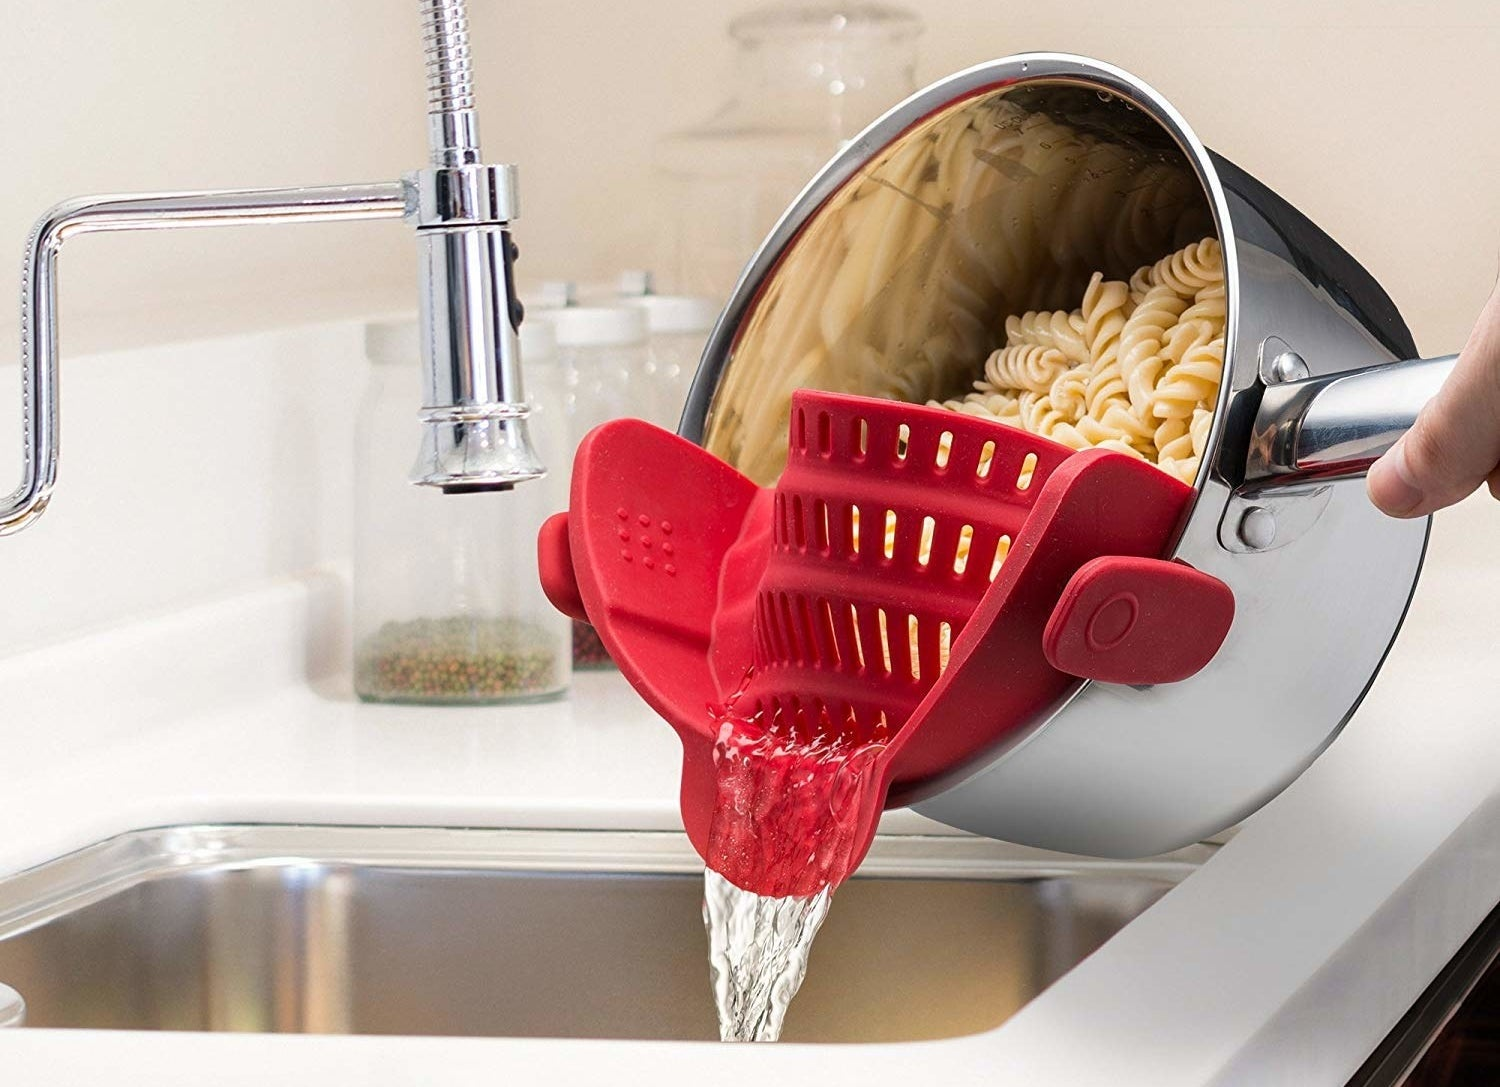 One hand pouring water out of a pot of pasta using the red strainer